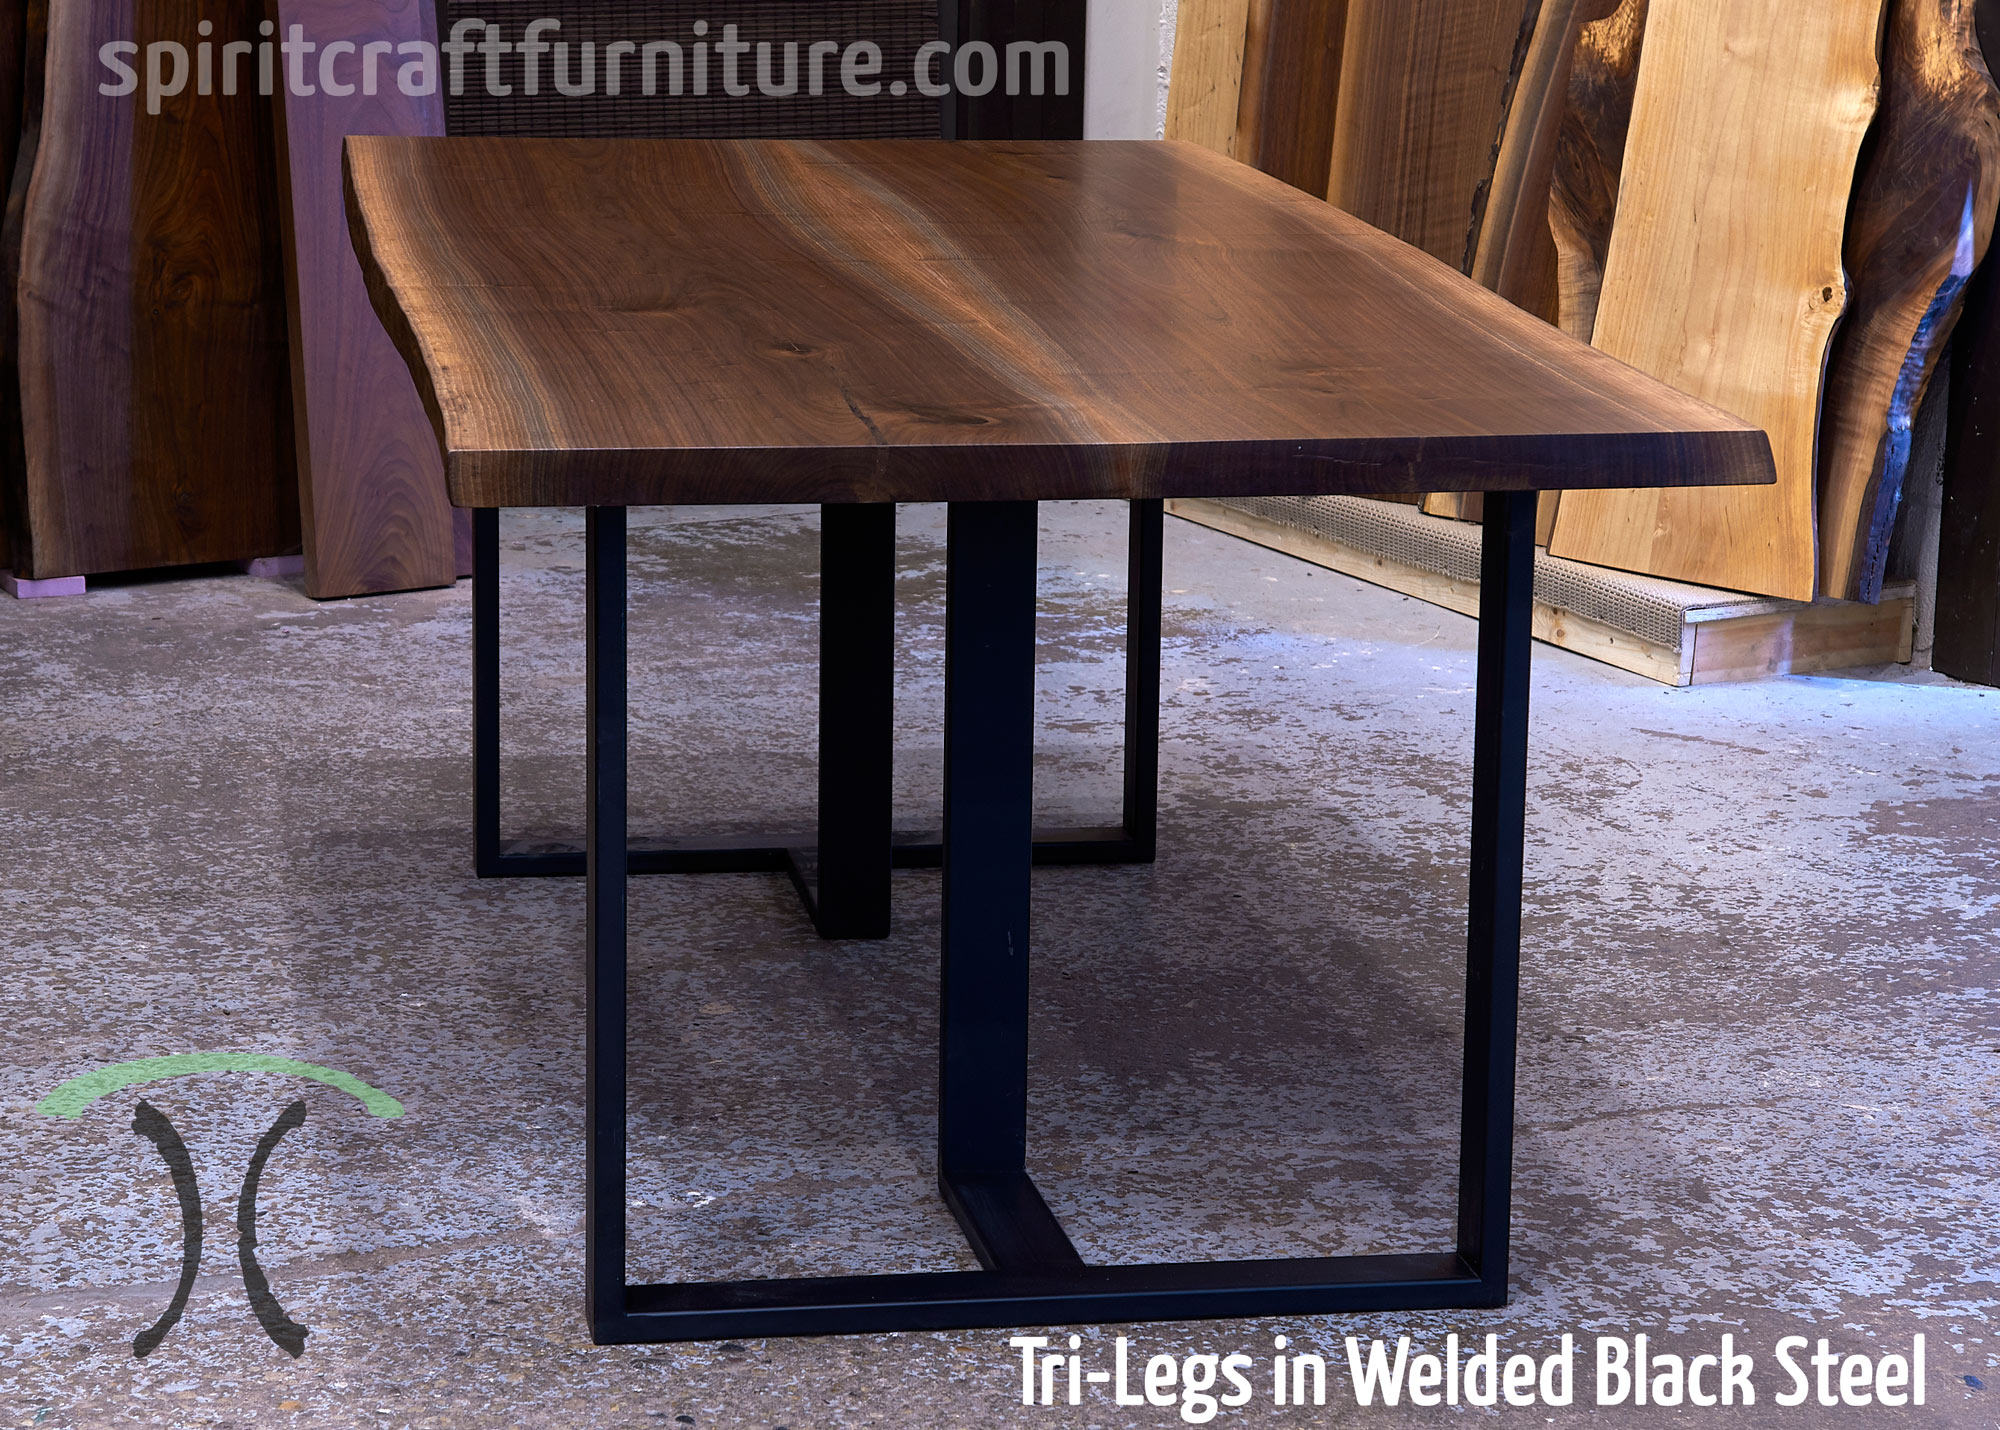 Custom made 1 x 3 tri-legs, in welded steel painted black with live edge walnut slab table top.